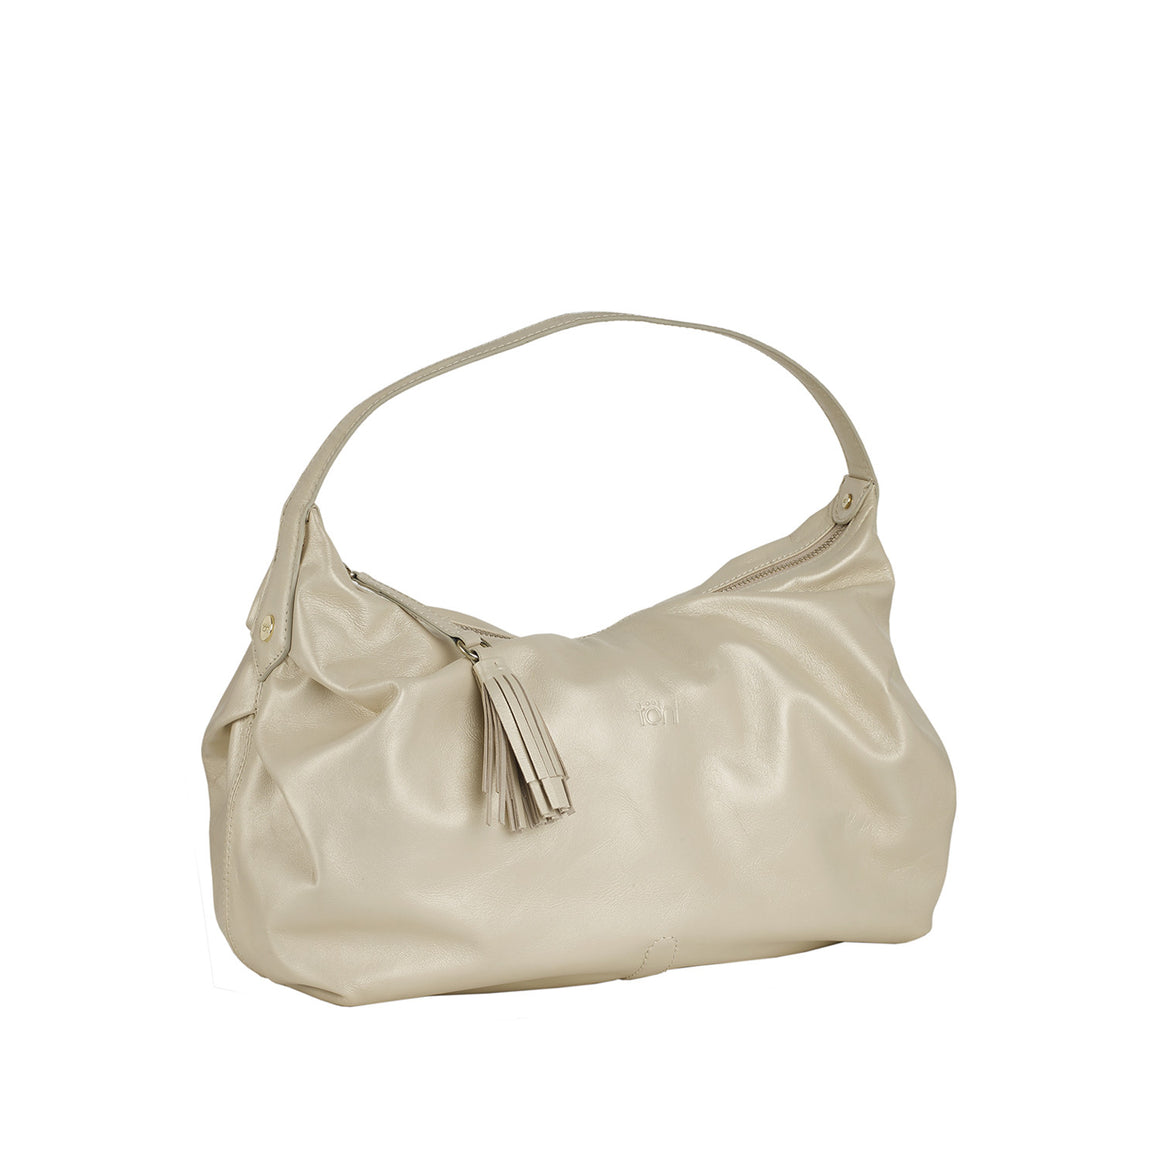 HH 0001 - TOHL TINSLEY WOMEN'S SHOULDER  BAGUETTE - CHAMPAGNE PEARL